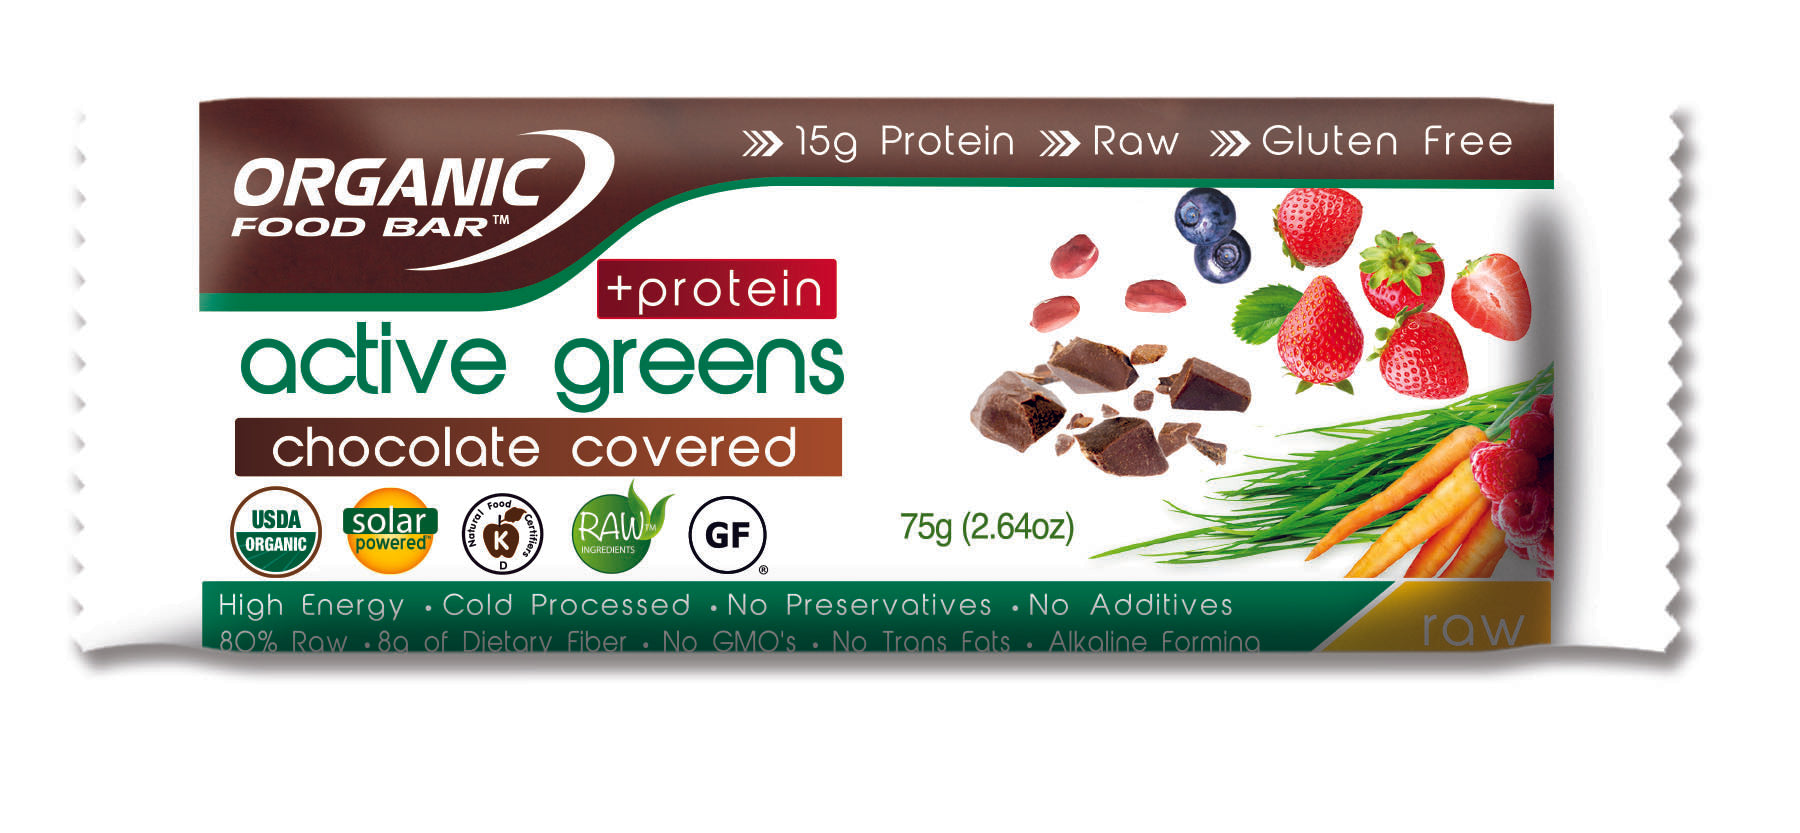 Active Greens Protein Chocolate Covered Organic Food Bar